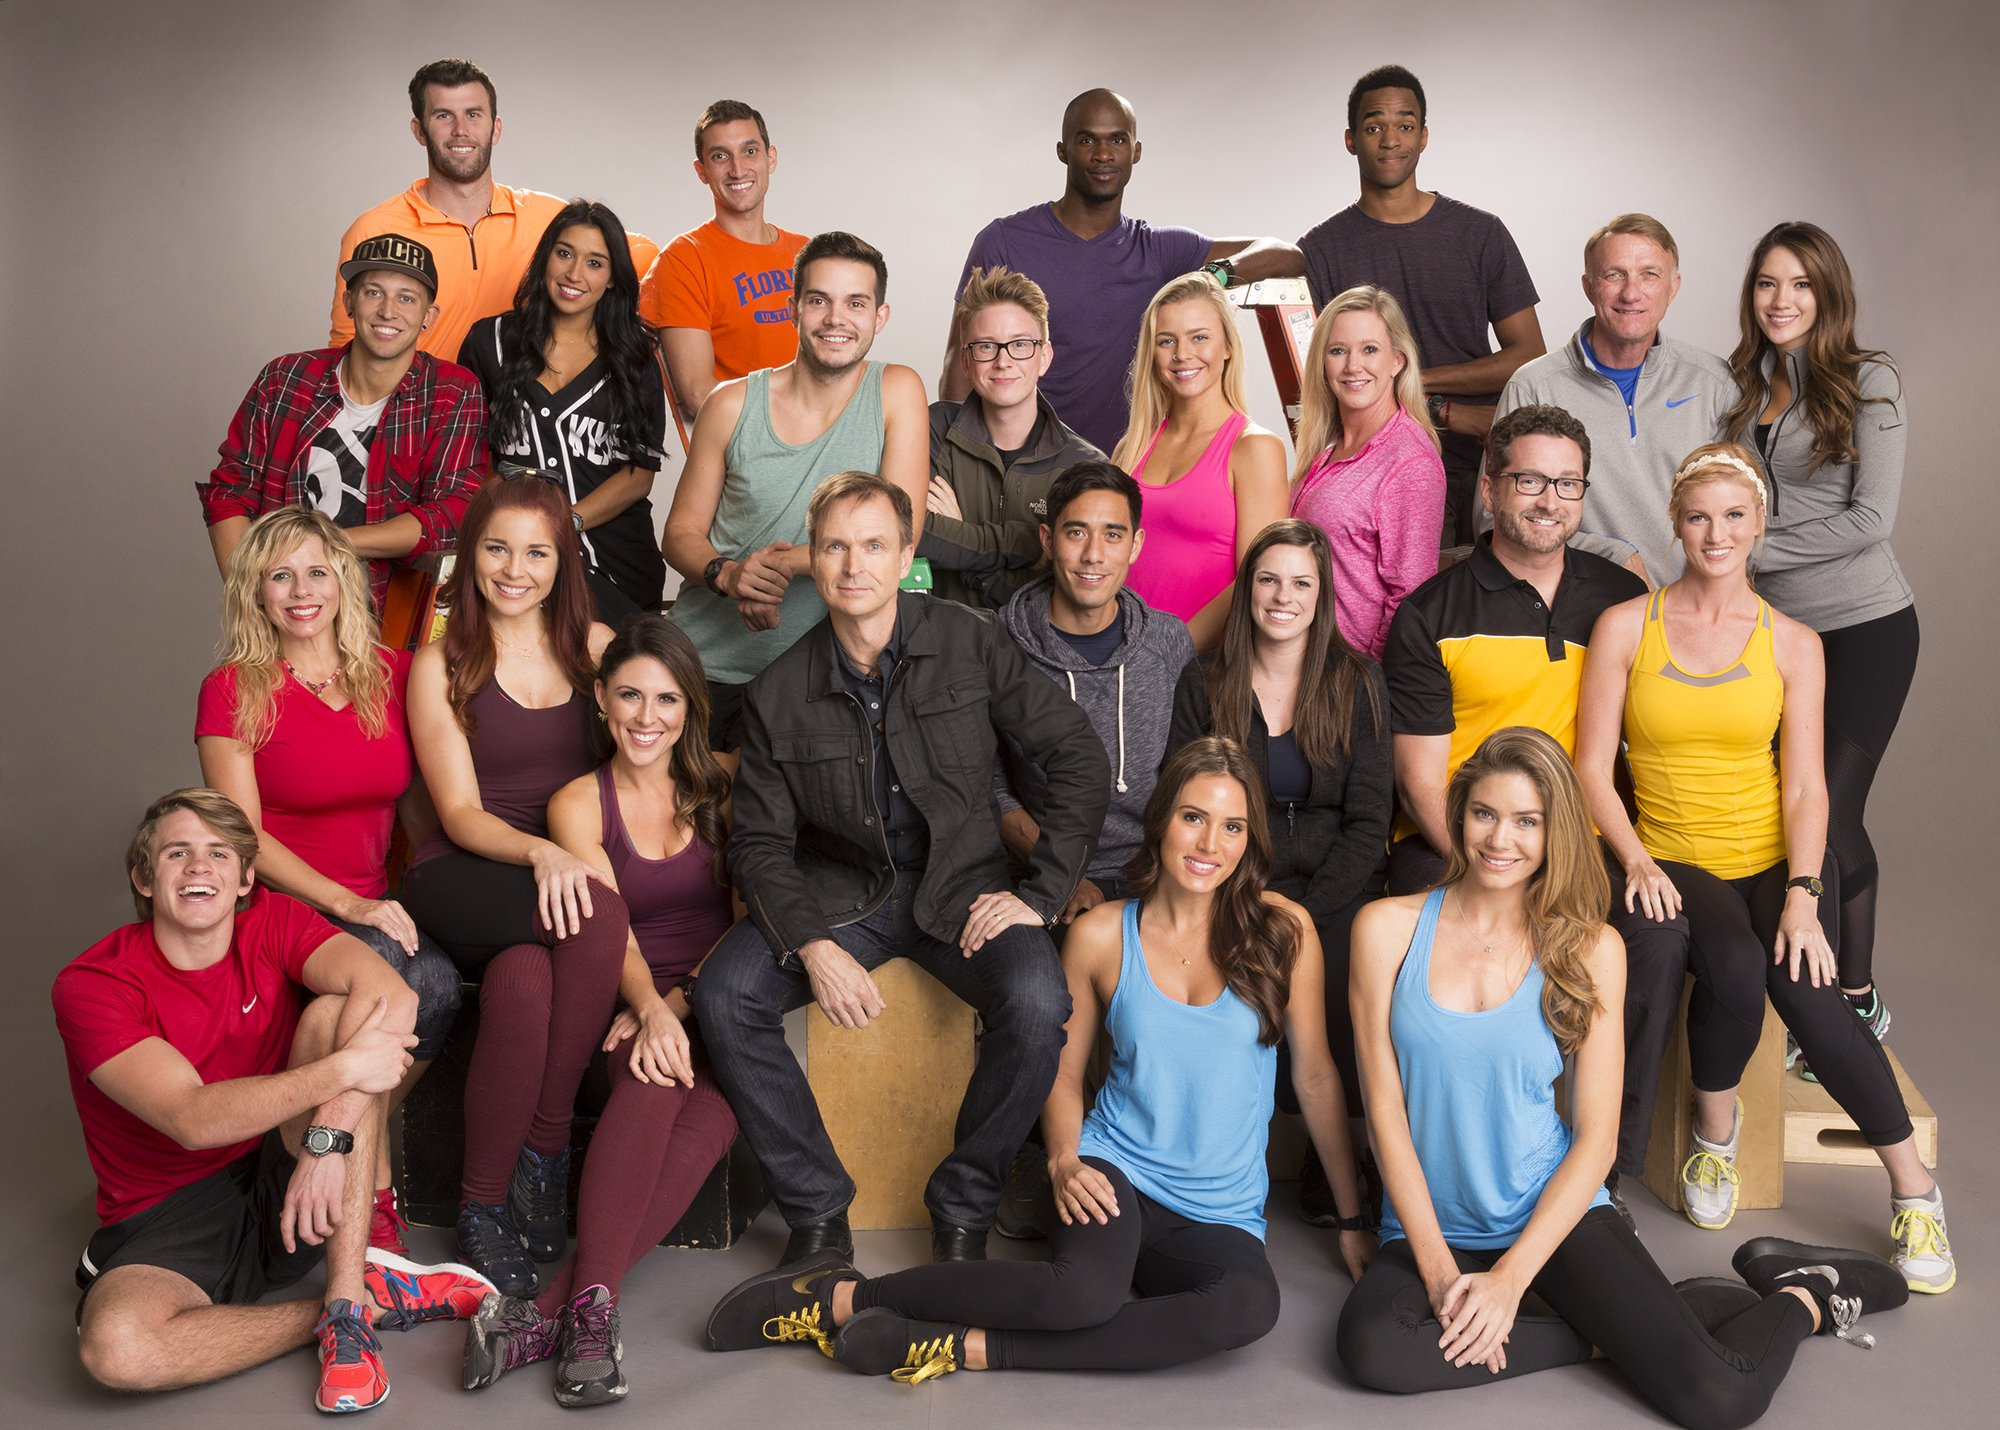 The Amazing Race 28 Contestants